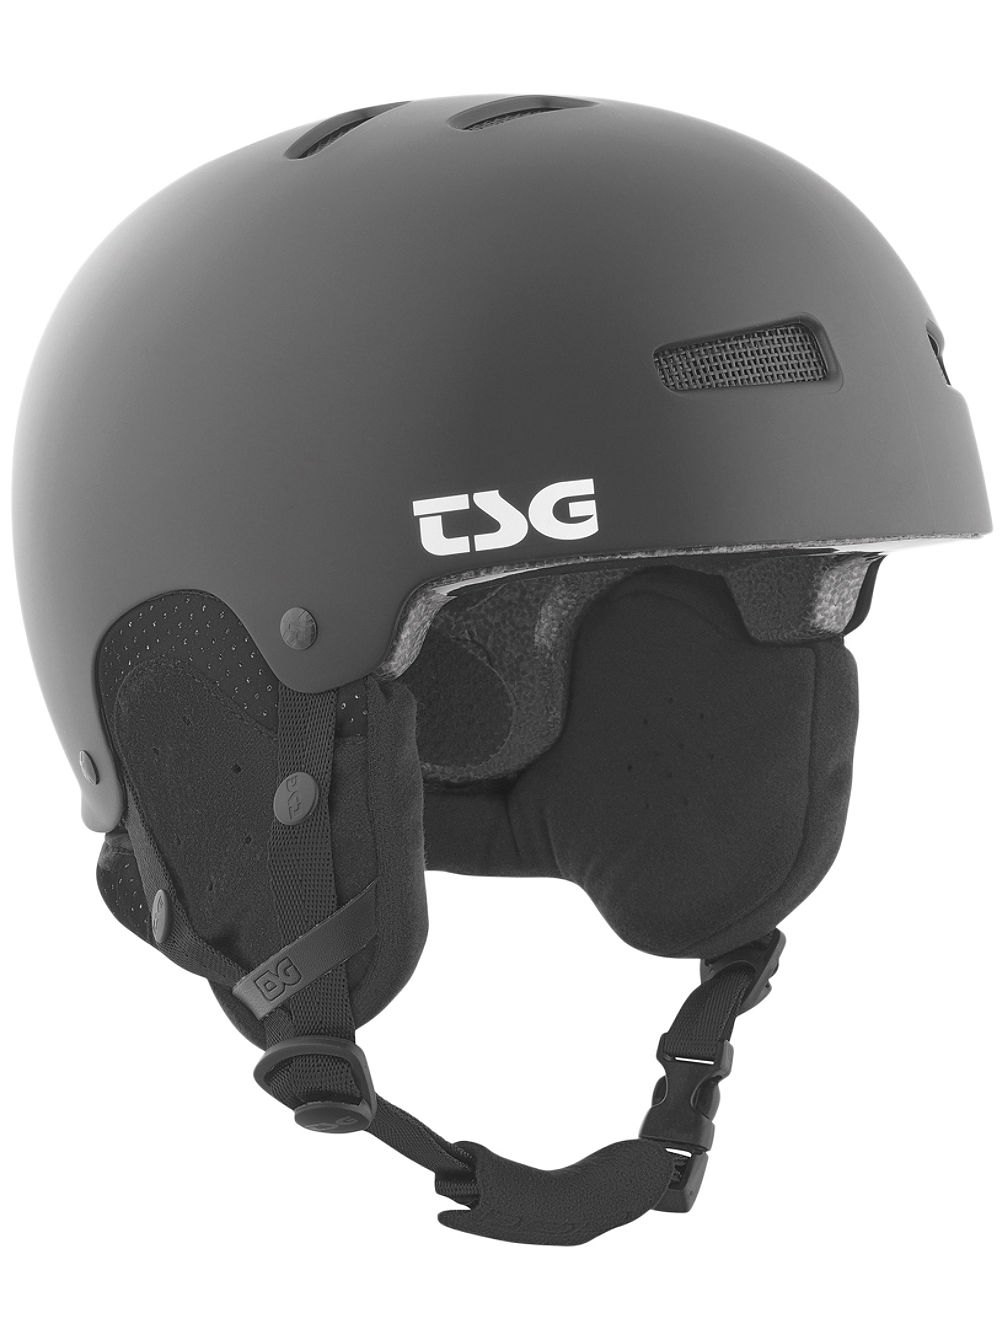 tsg-gravity-solid-color-helmet-youth